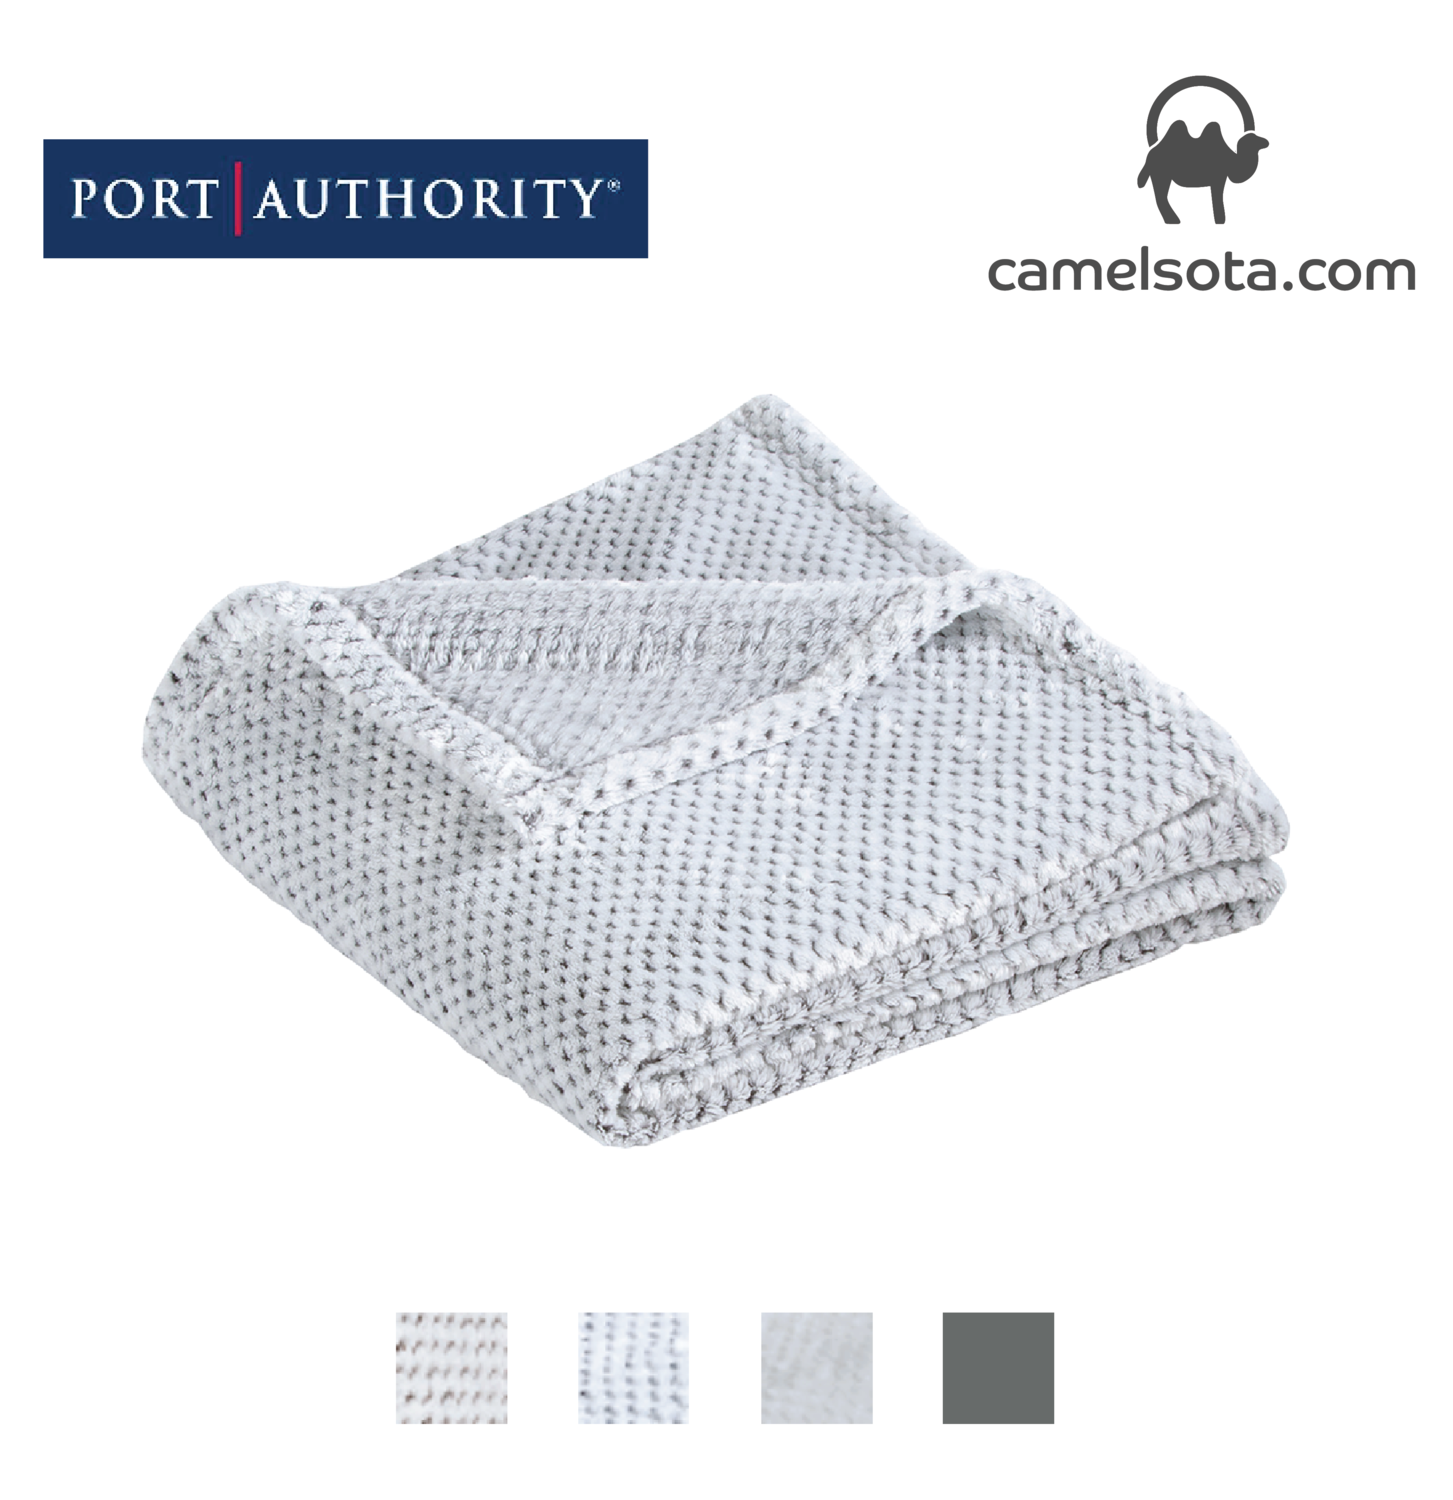 Custom Embroidered Port Authority Plush Texture Blanket